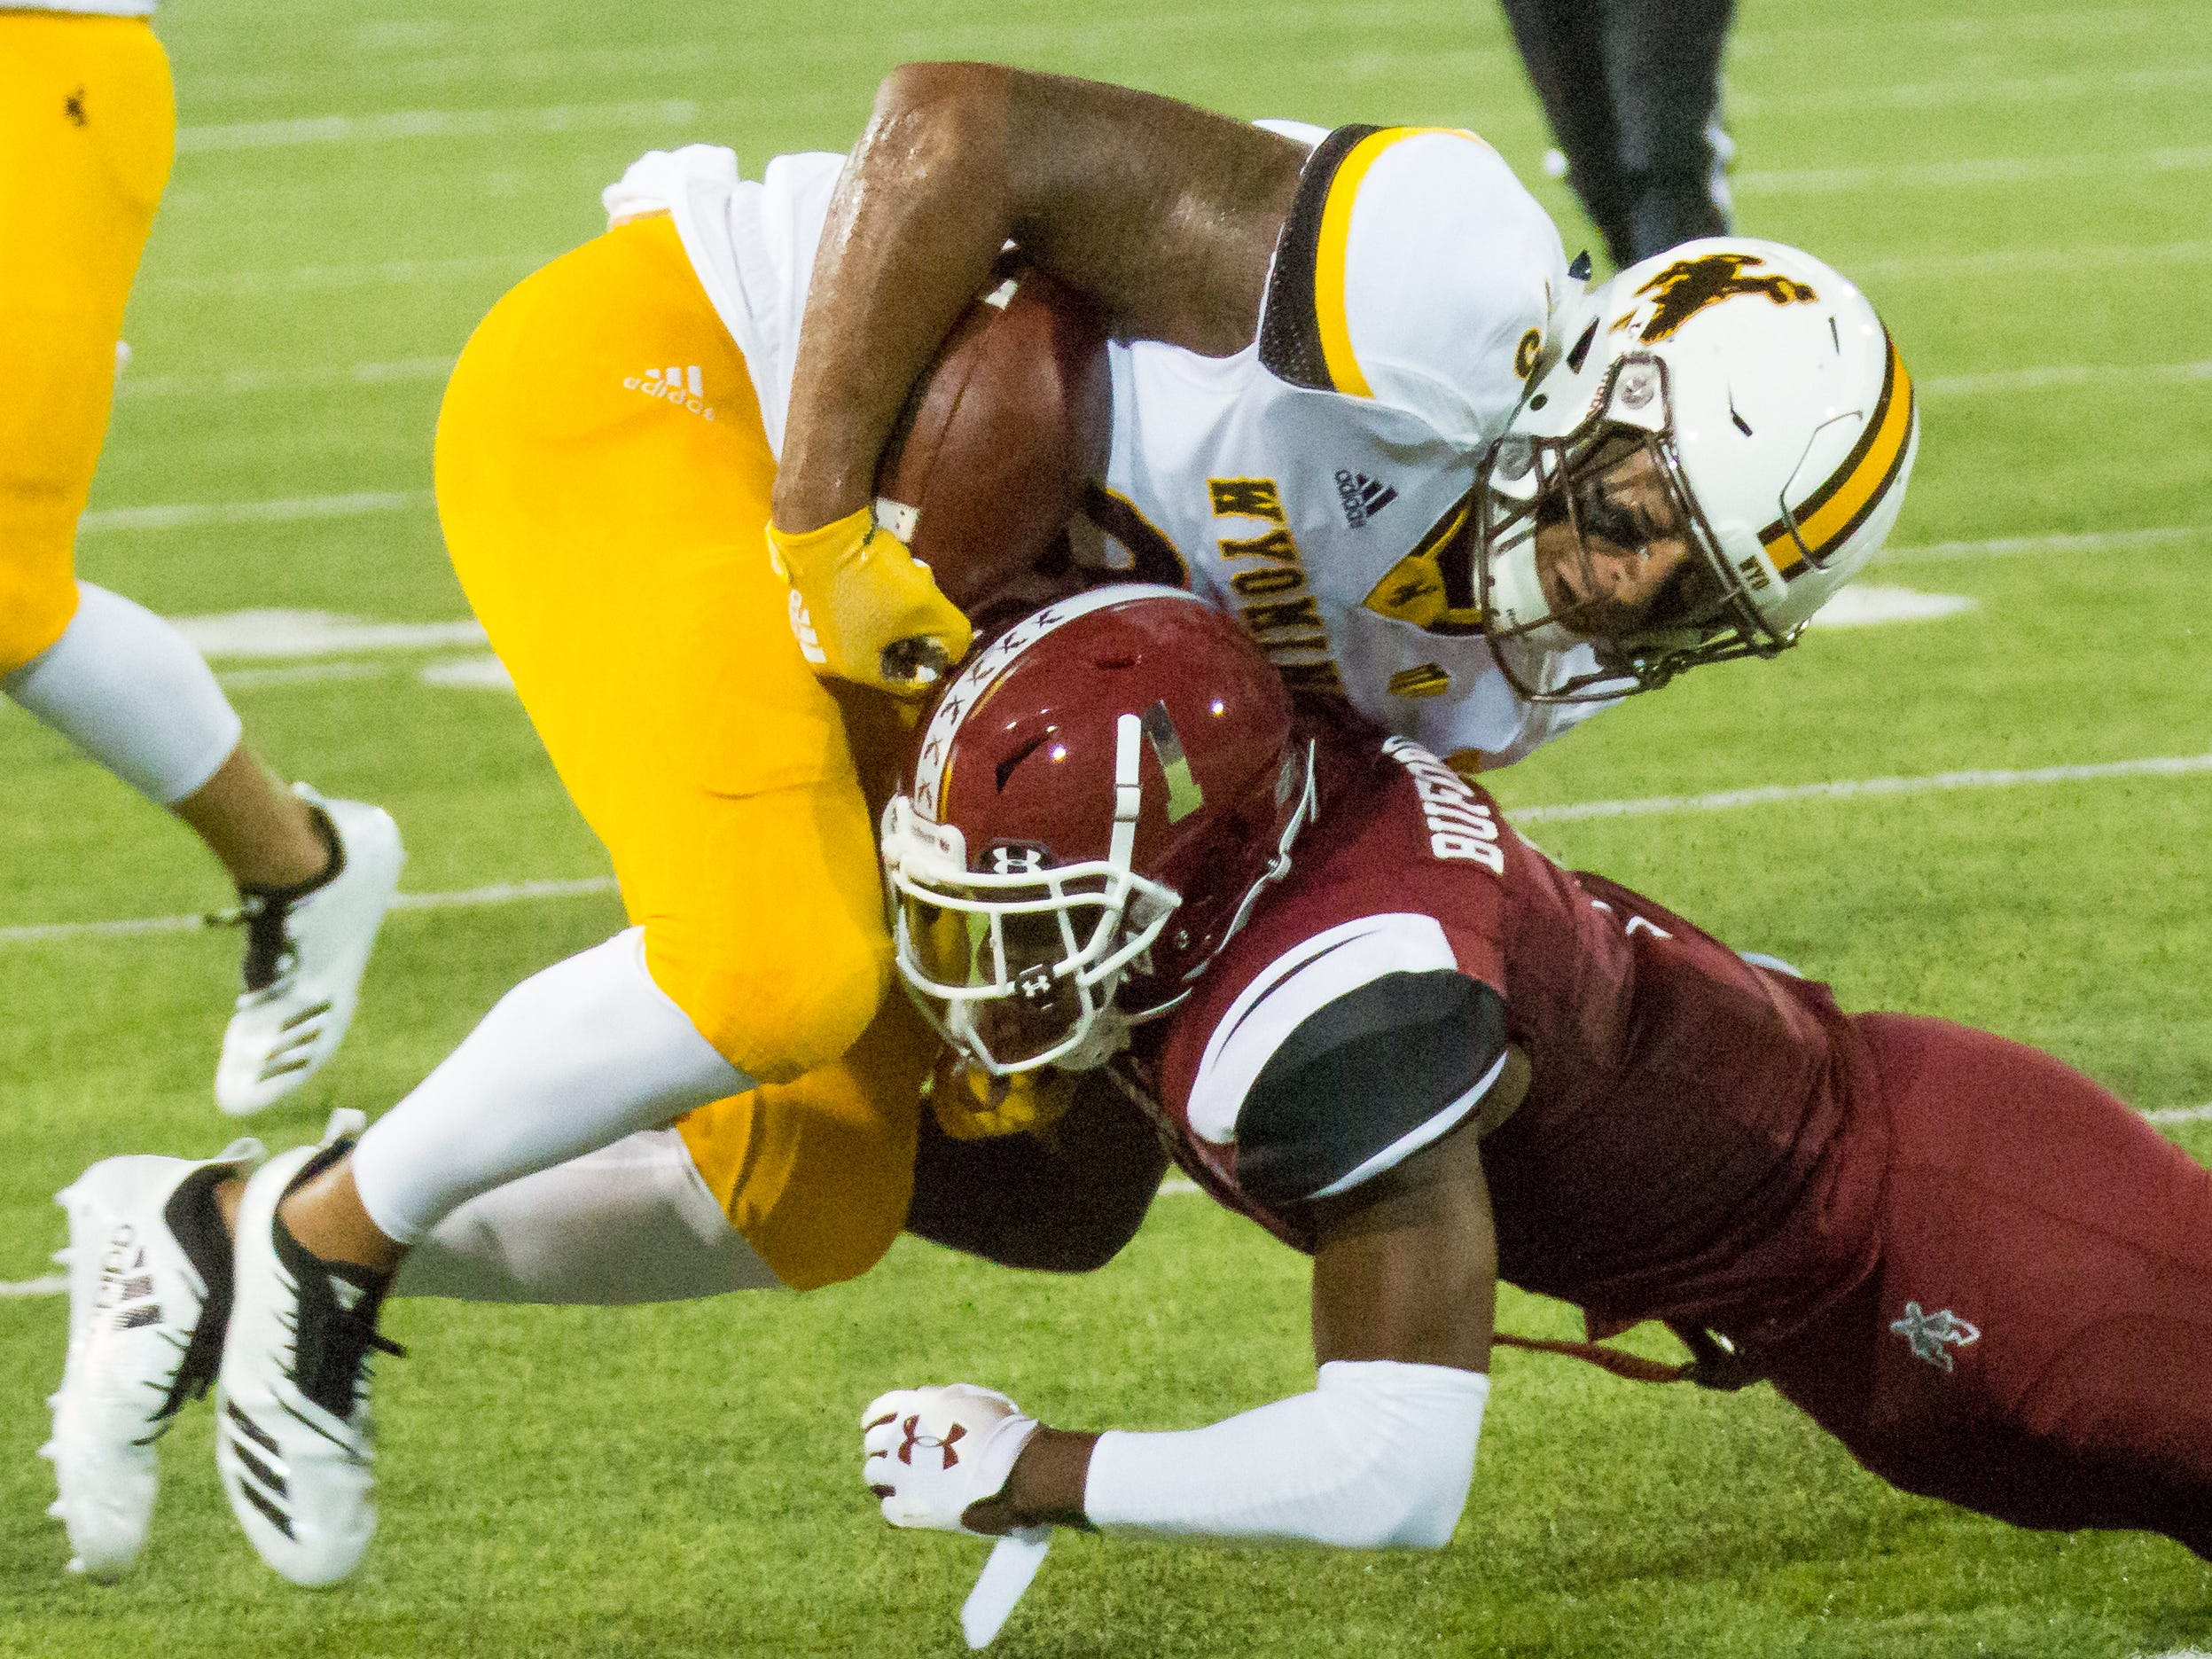 Wyoming's Tyree Mayfield holds onto the ball while NMSU defender Ray Buford Jr. on Saturday, August 25, 2018, during the NMSU/Wyoming game at the Aggie Memorial Stadium.